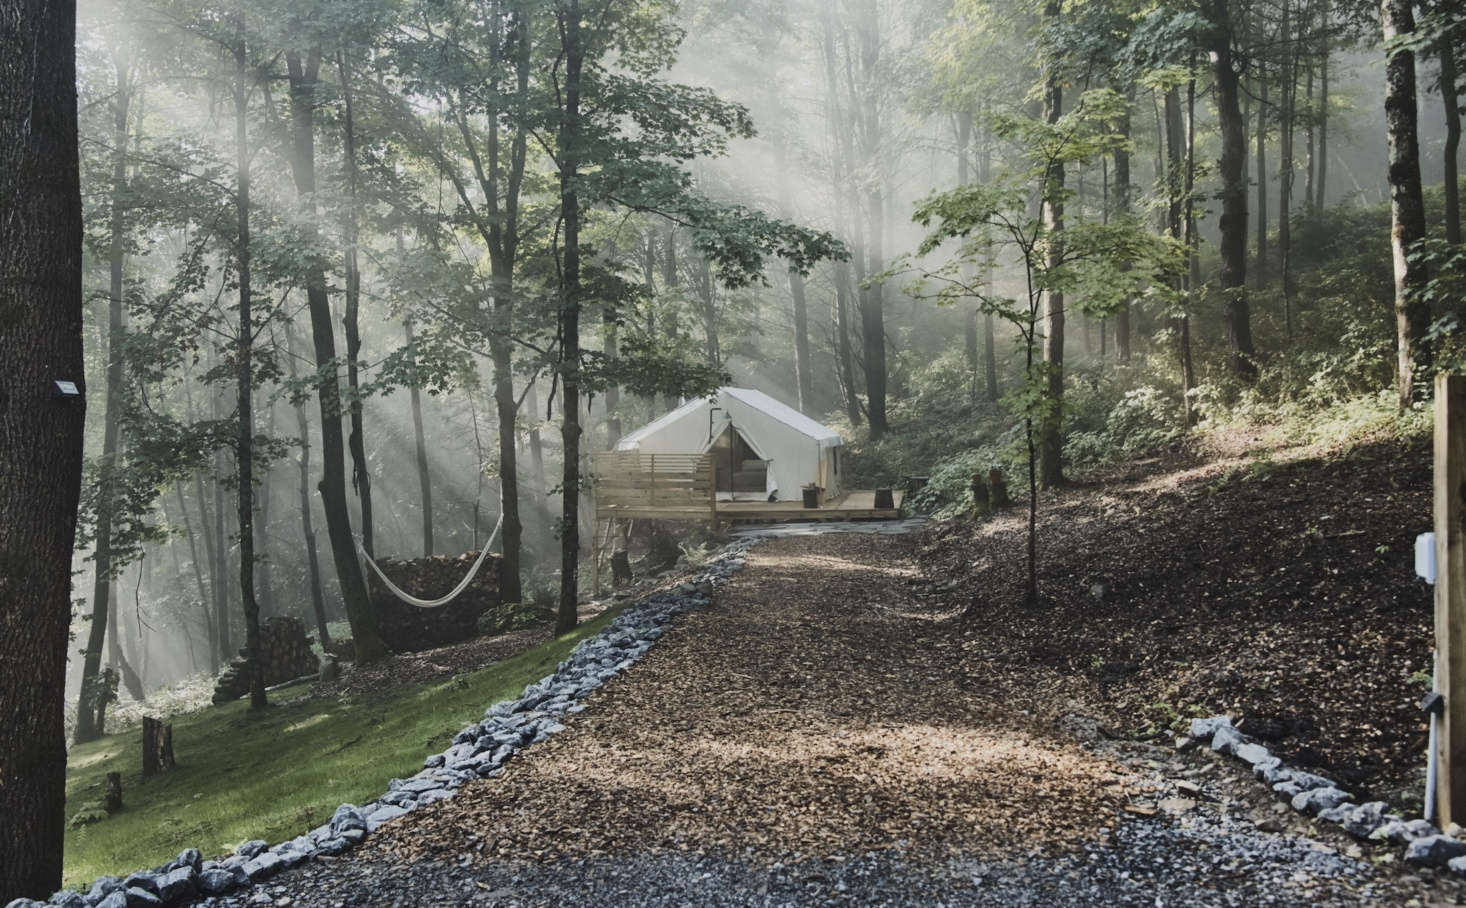 There are nine tent sites, each with its own hammock and wall of firewood. Solar-powered lights illuminate the paths at night. Photograph by Nick Bean.